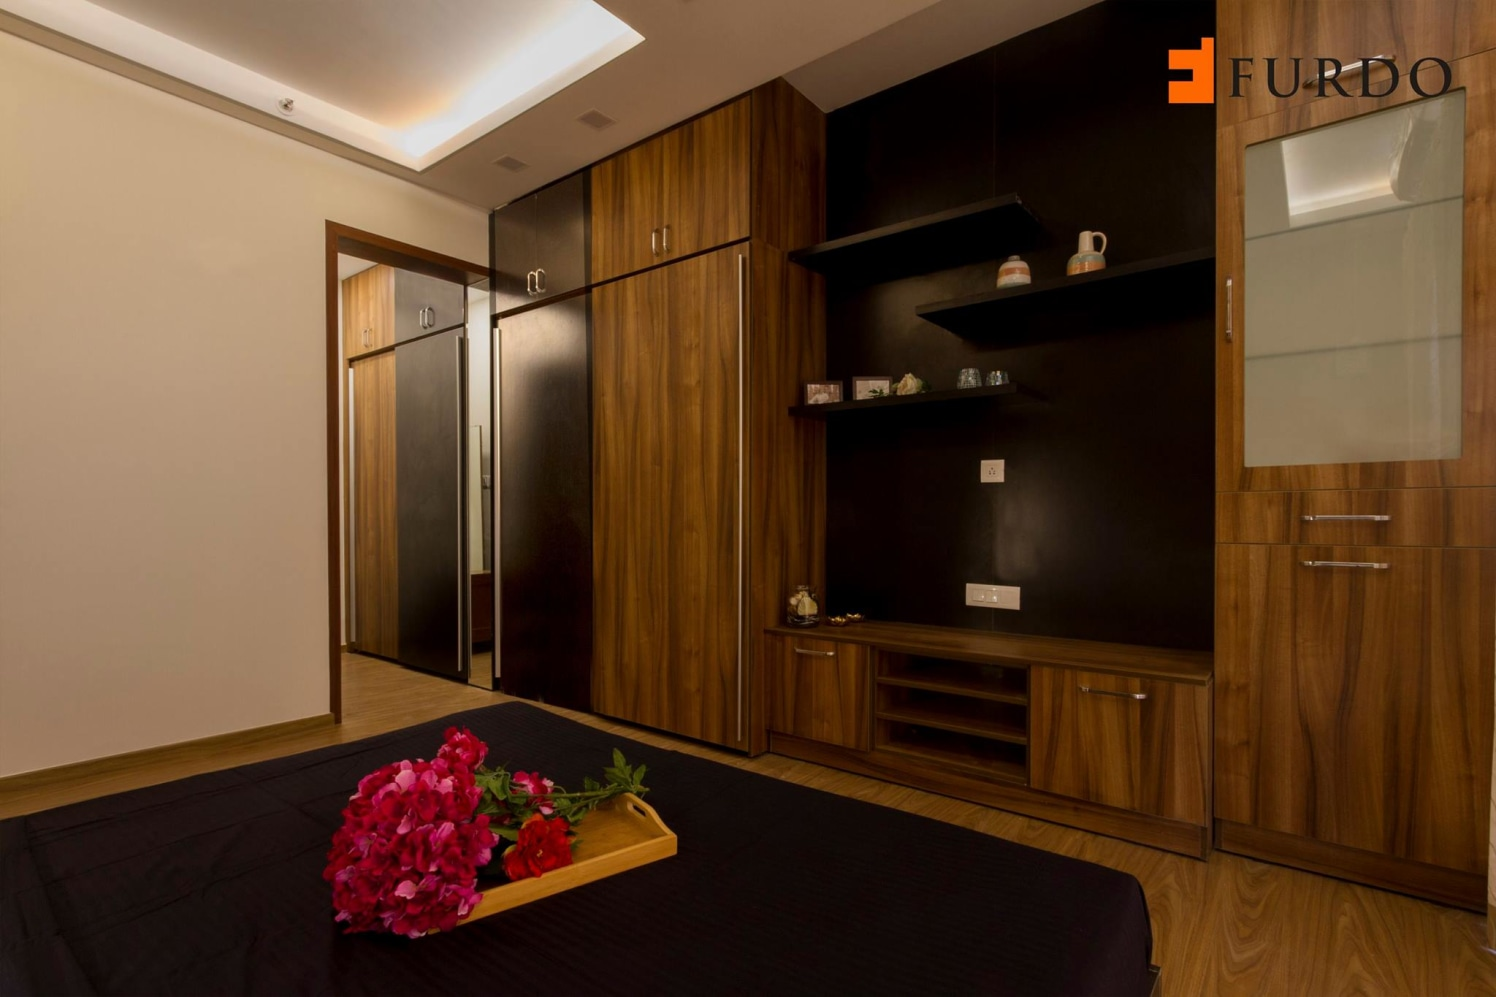 Bedroom With Wooden Wardrobe And Dressing Table by Furdo.com Bedroom Modern | Interior Design Photos & Ideas